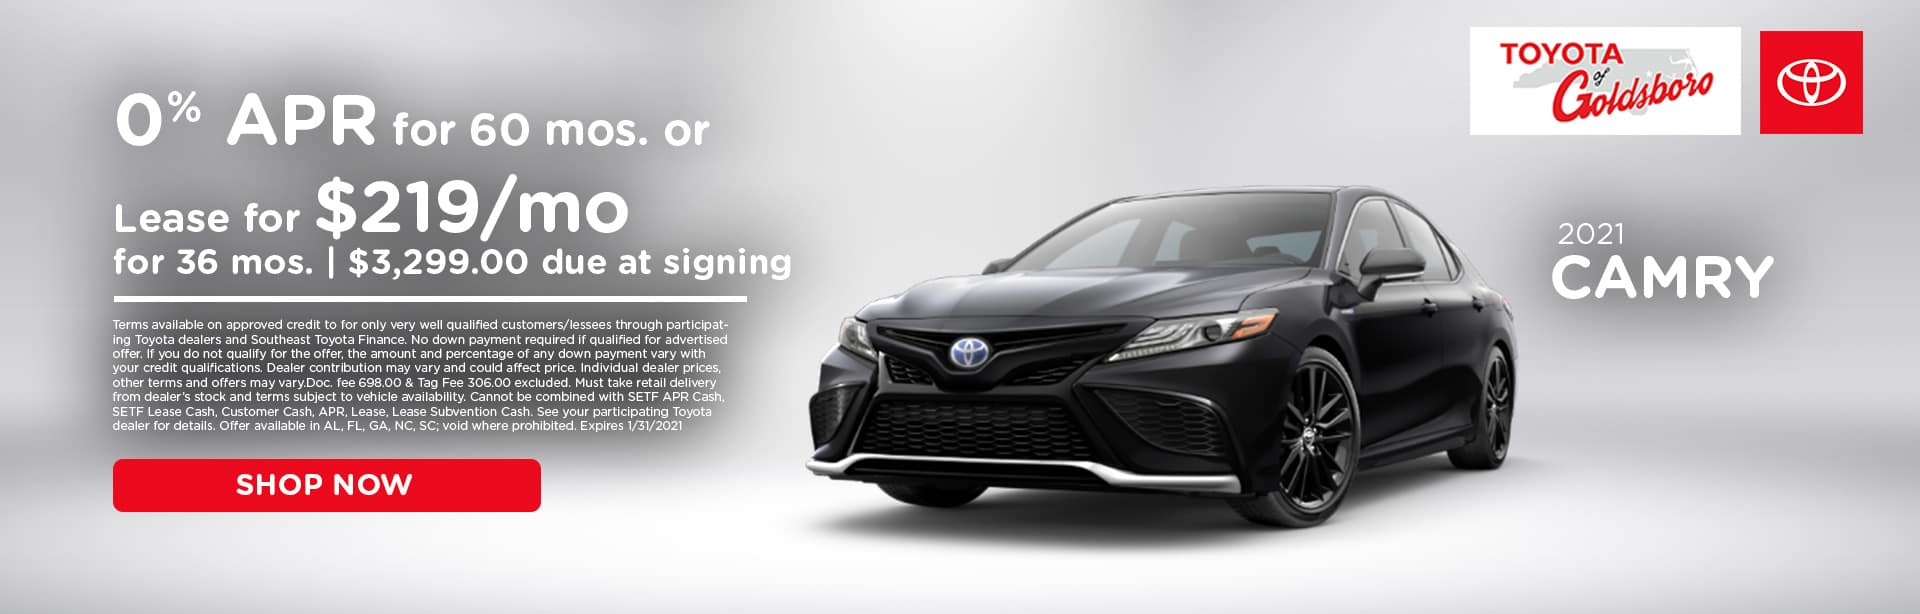 toyota-of-goldsboro-january-camry-special-banner